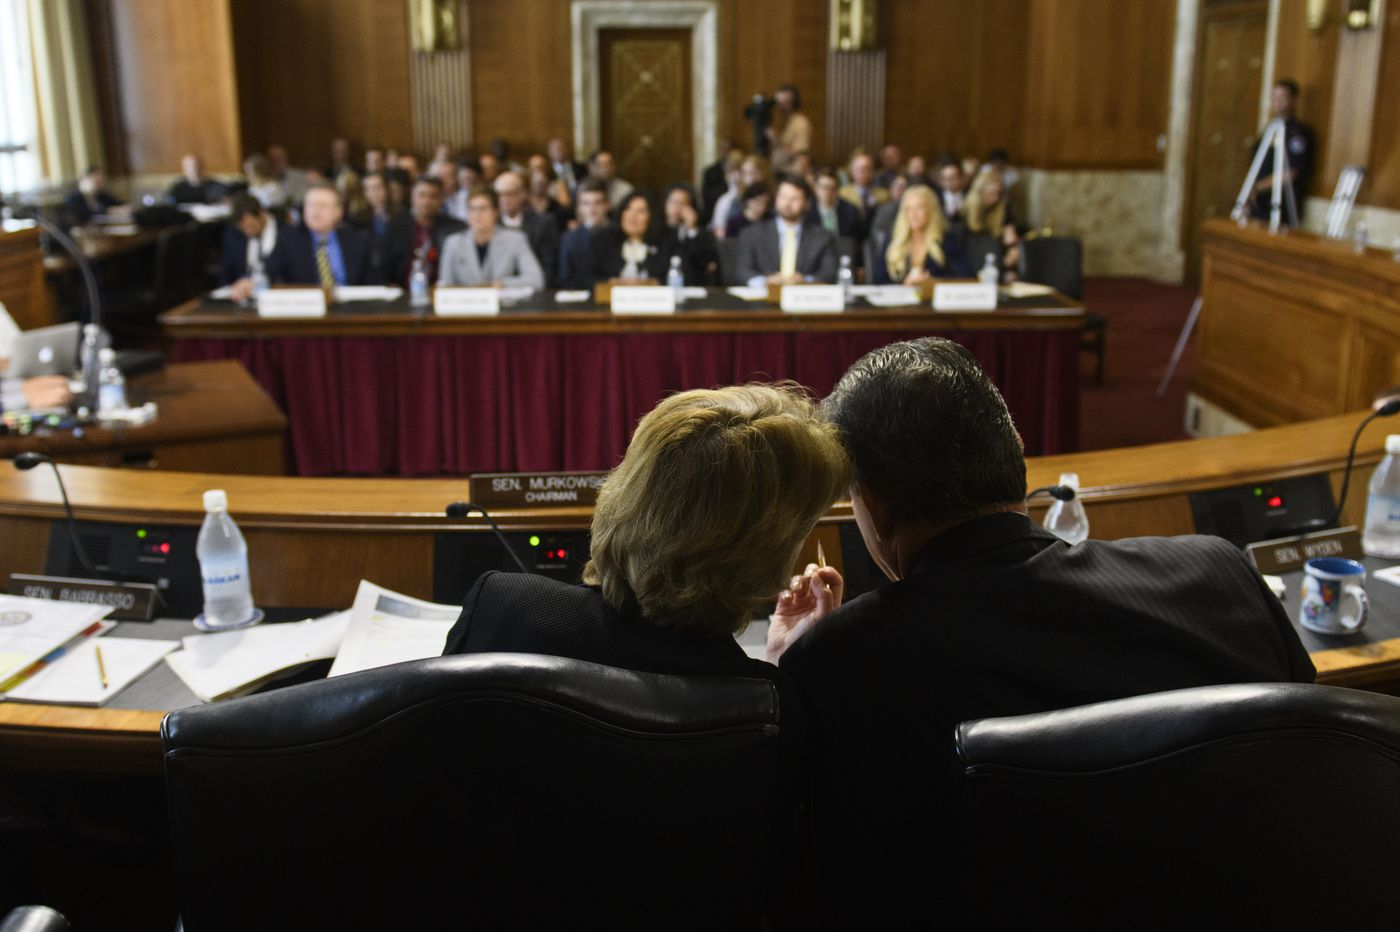 Sen. Lisa Murkowski, chair of the Senate Energy and Natural Resources Committee talks with ranking member Sen. Joe Manchin, D-West Virginia, during a hearing on June 18, 2019. (Marc Lester / ADN)